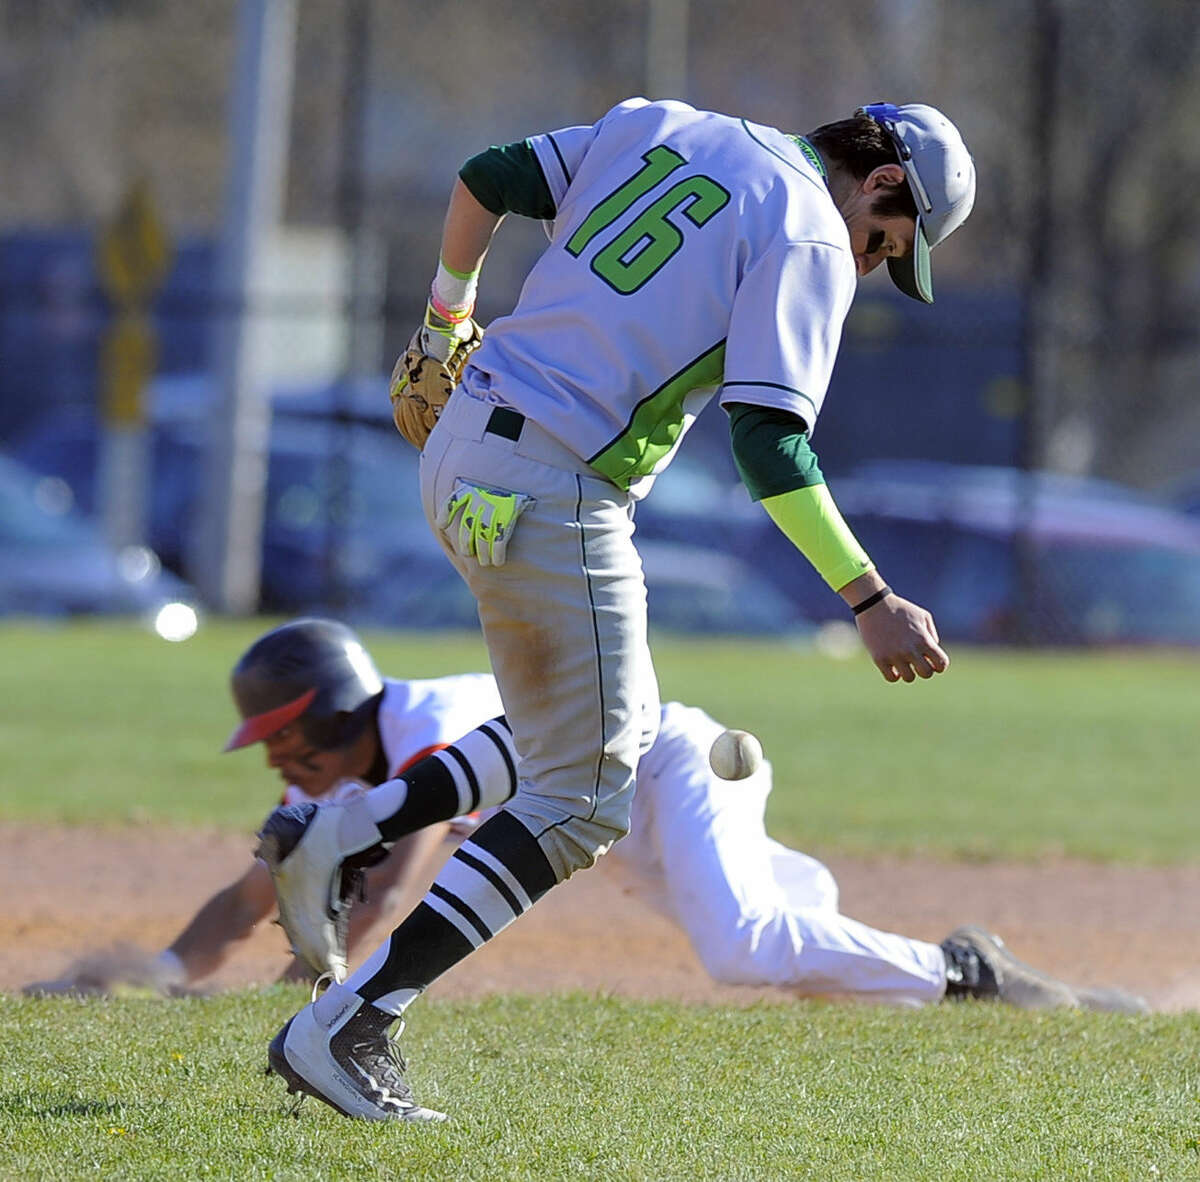 Norwalk shortstop Eddie McCabe bobbles the hit ball of Stamford Ruben Rodriguez in the fourth inning as Jorge Lopez slides into second base during a FCIAC boys baseball game at Stamford High School on April 15, 2016. Norwalk defeated Stamford 8-7.